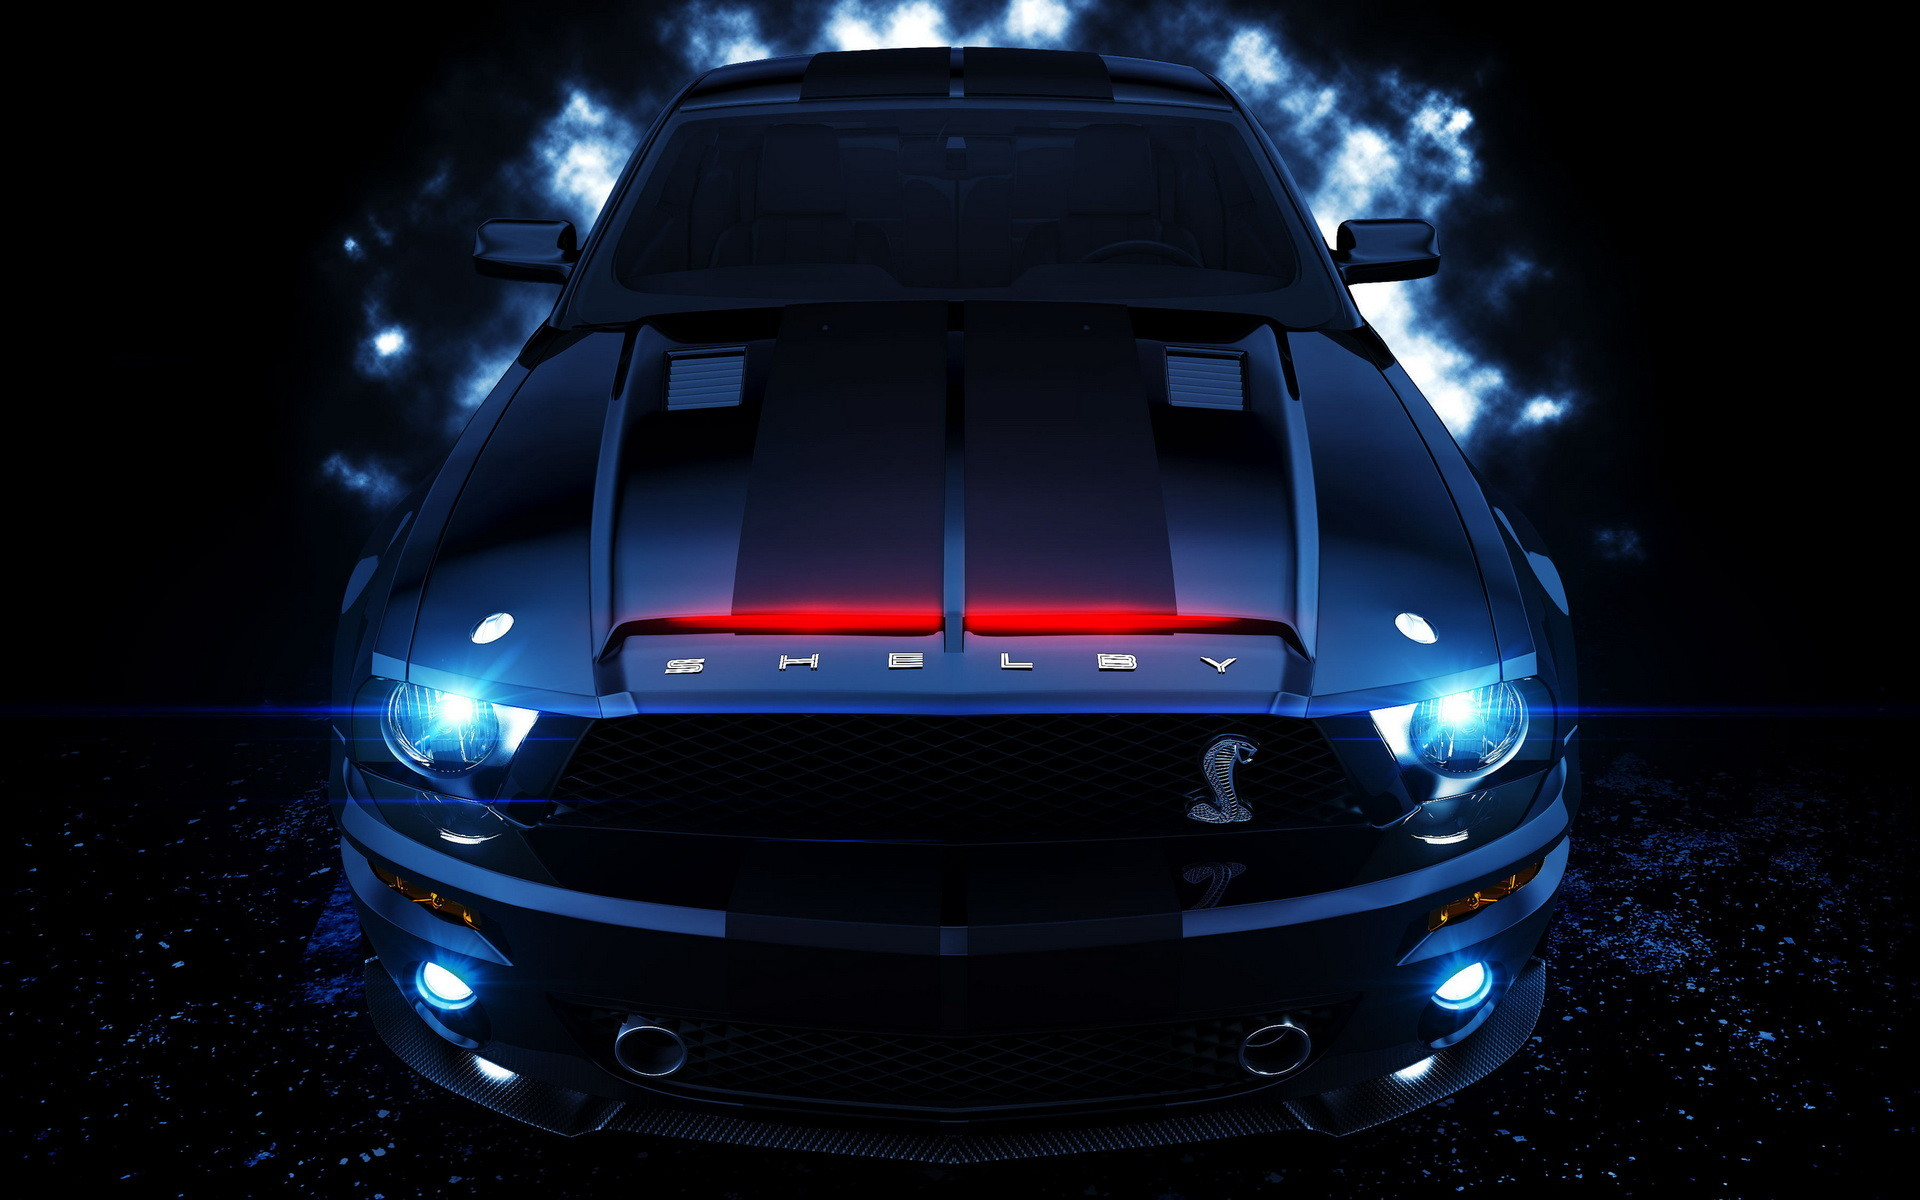 … Ford Mustang Shelby Cobra HD Wallpapers Backgrounds Wallpaper